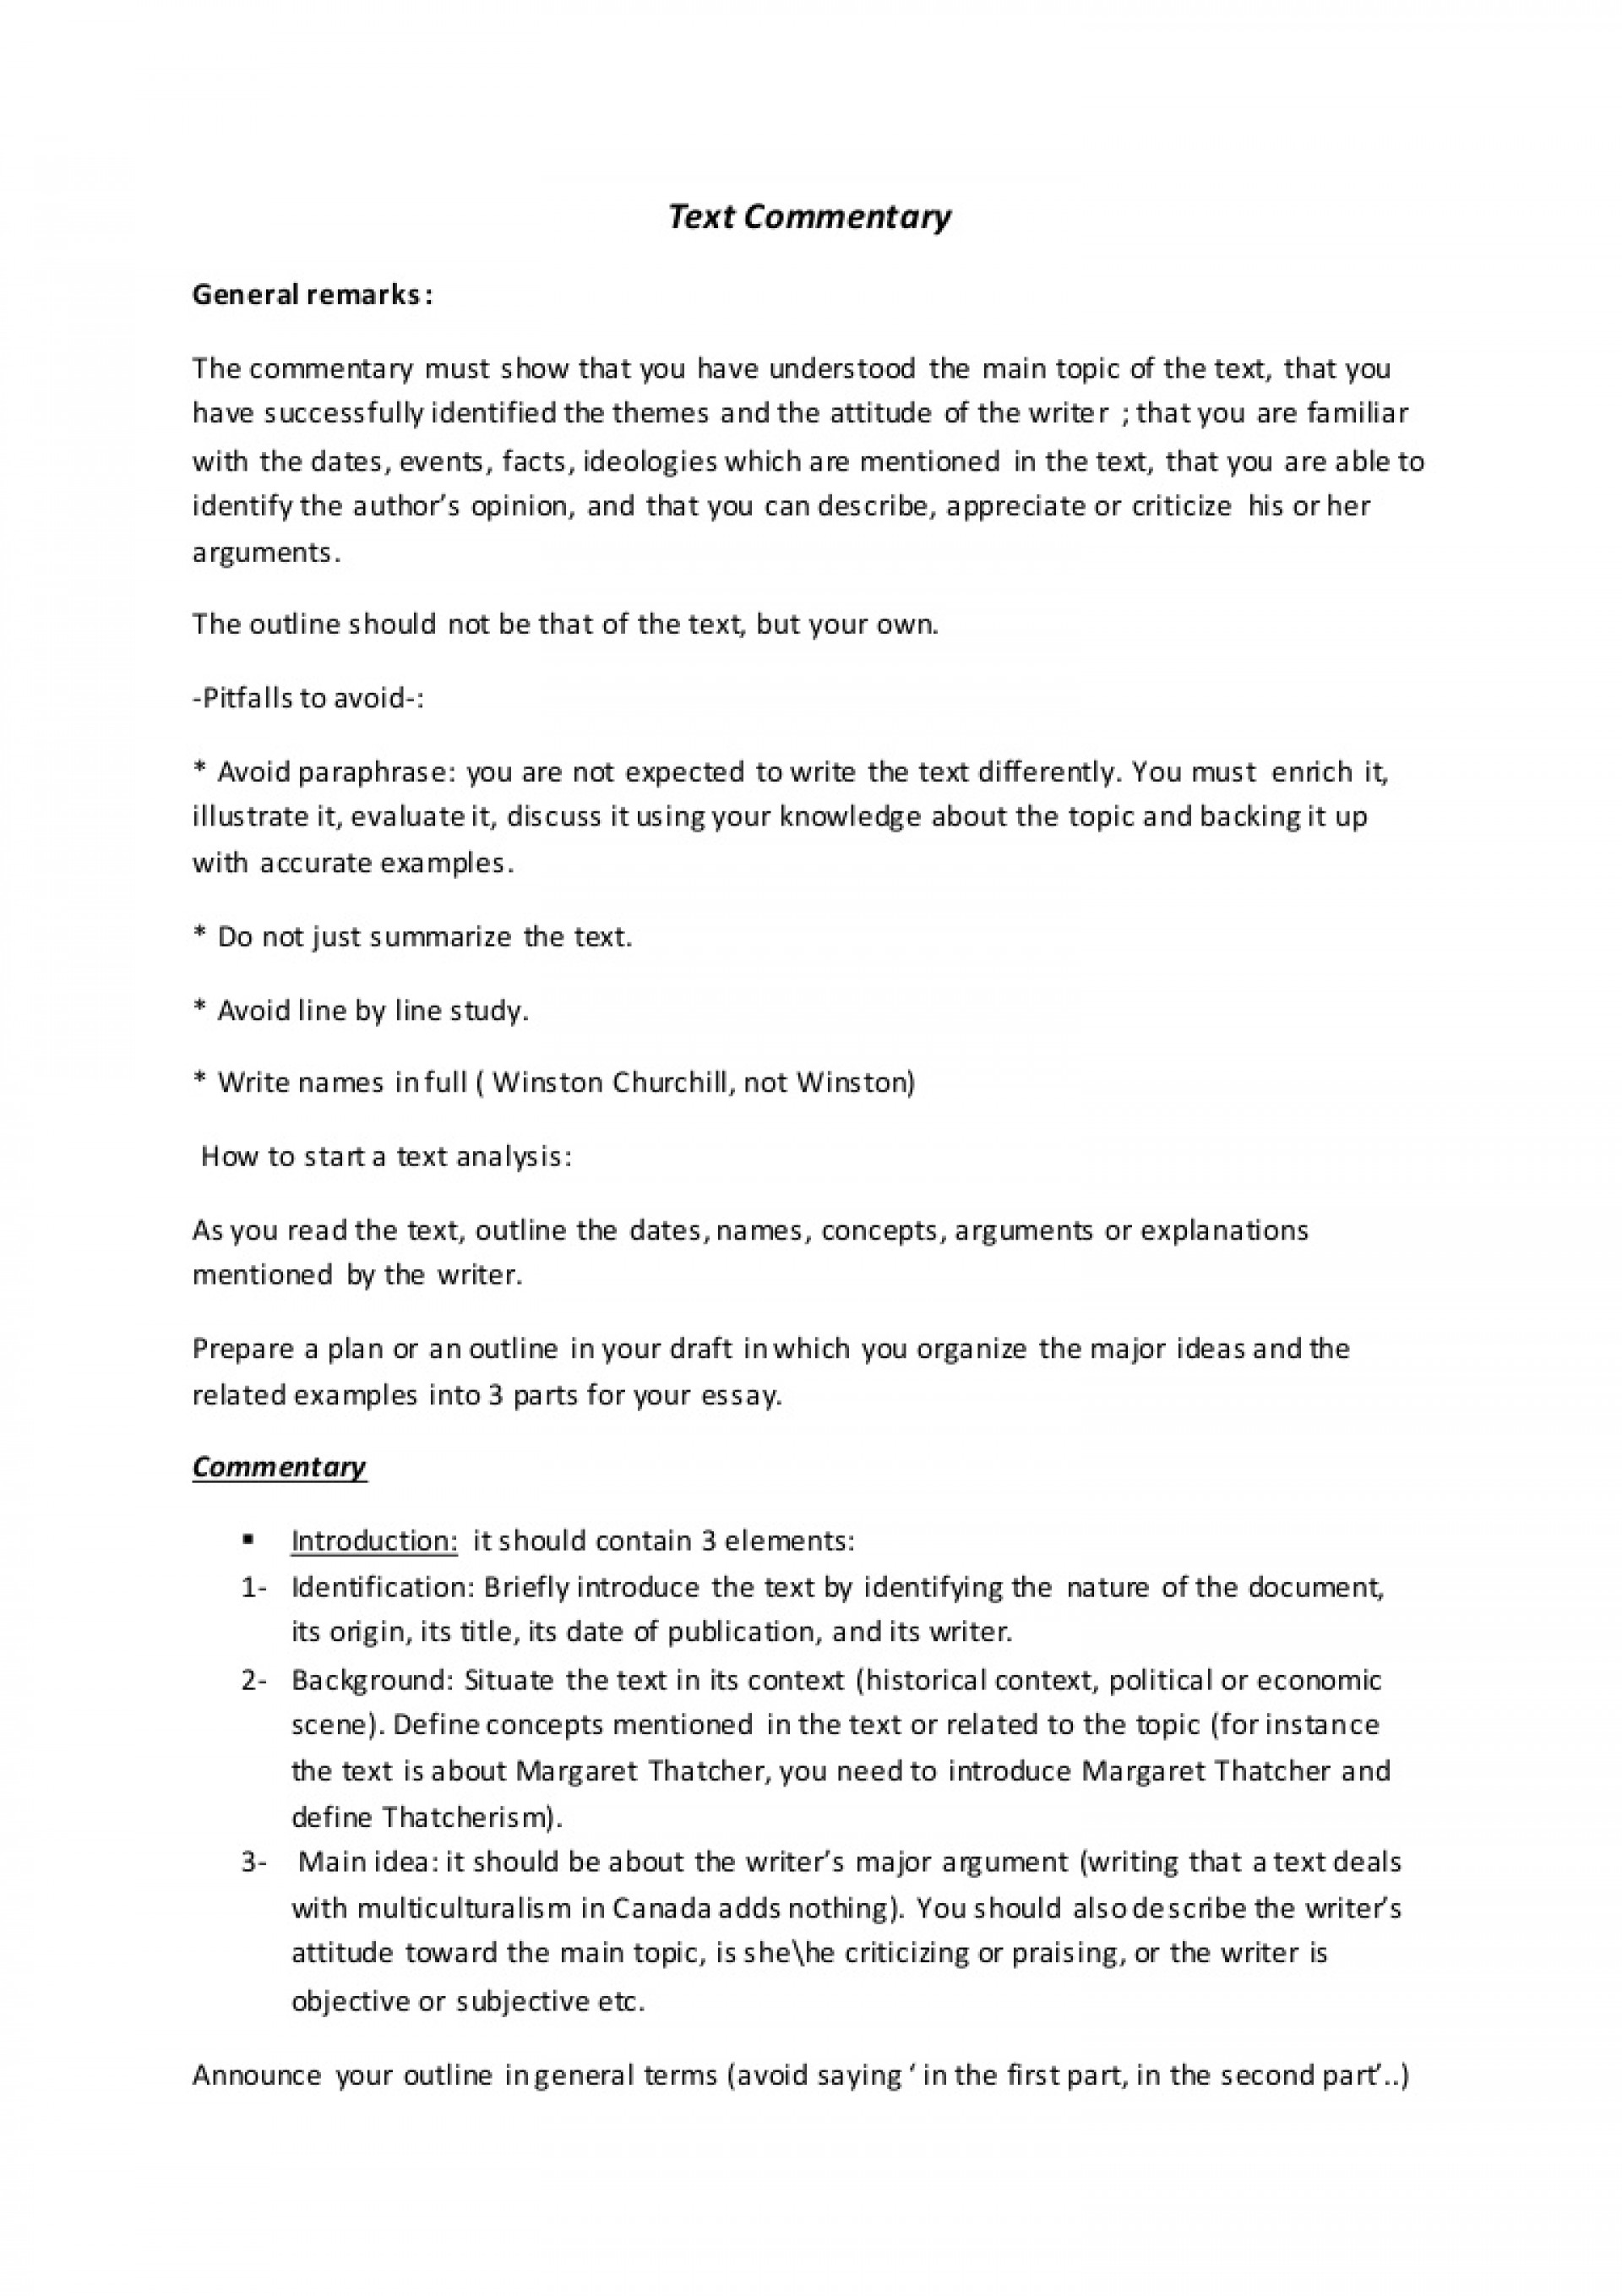 008 Essay Example Commentary Binary Options Critical On Crow By Meta Textcommentary Conversion Gate01 Thumbn Data Personal Examples Ibcial Evaluative Analysis Reflective Dreaded Social Art The Great Gatsby 1920